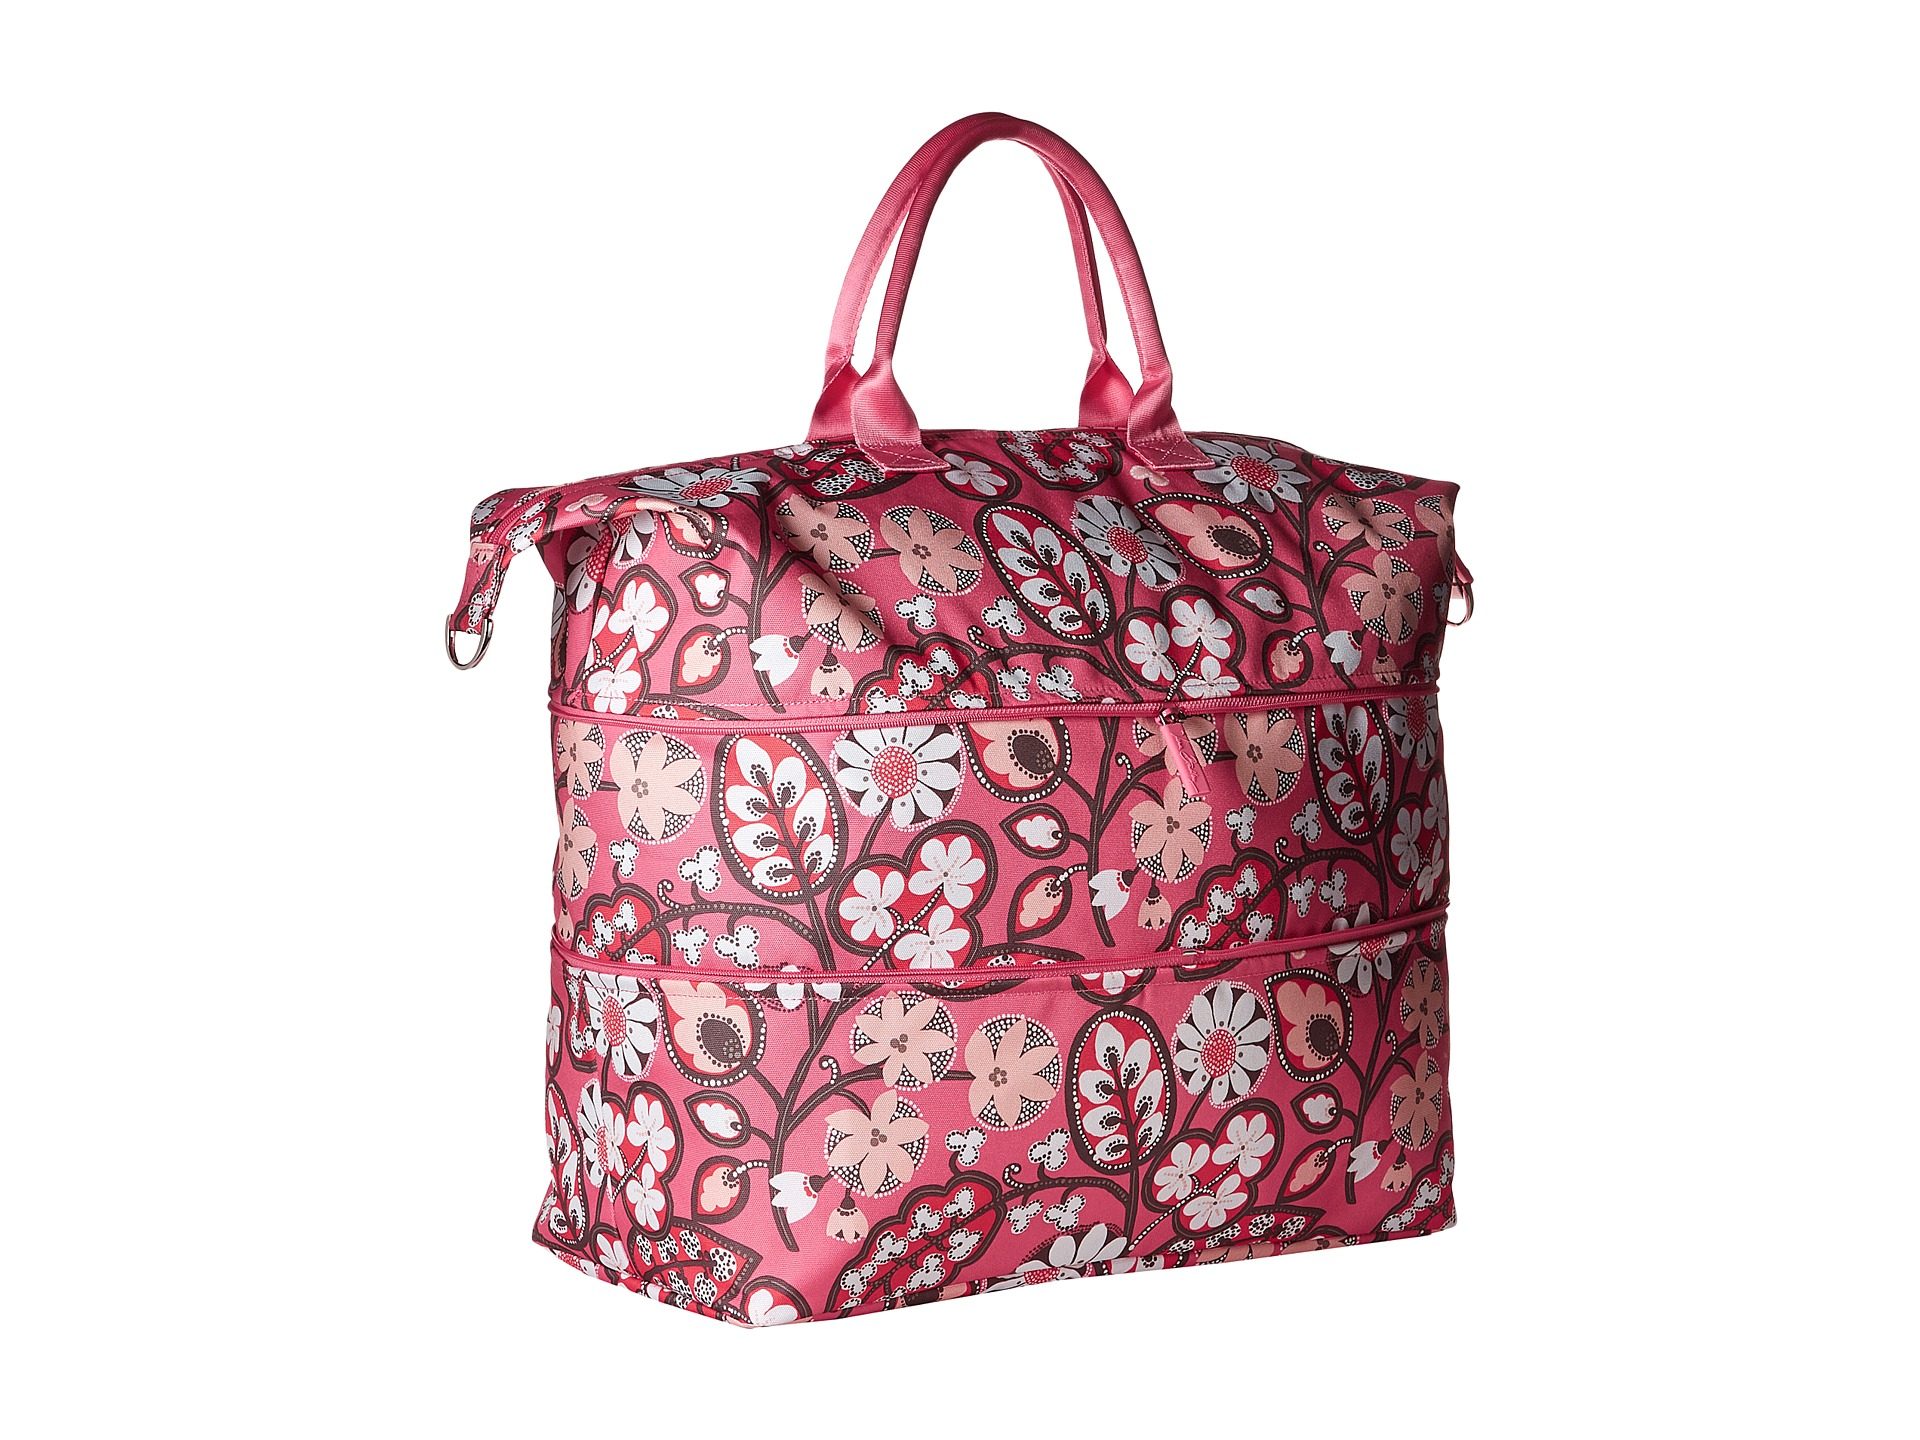 Vera bradley Lighten Up Expandable Travel Bag in Pink (Blush Pink ...